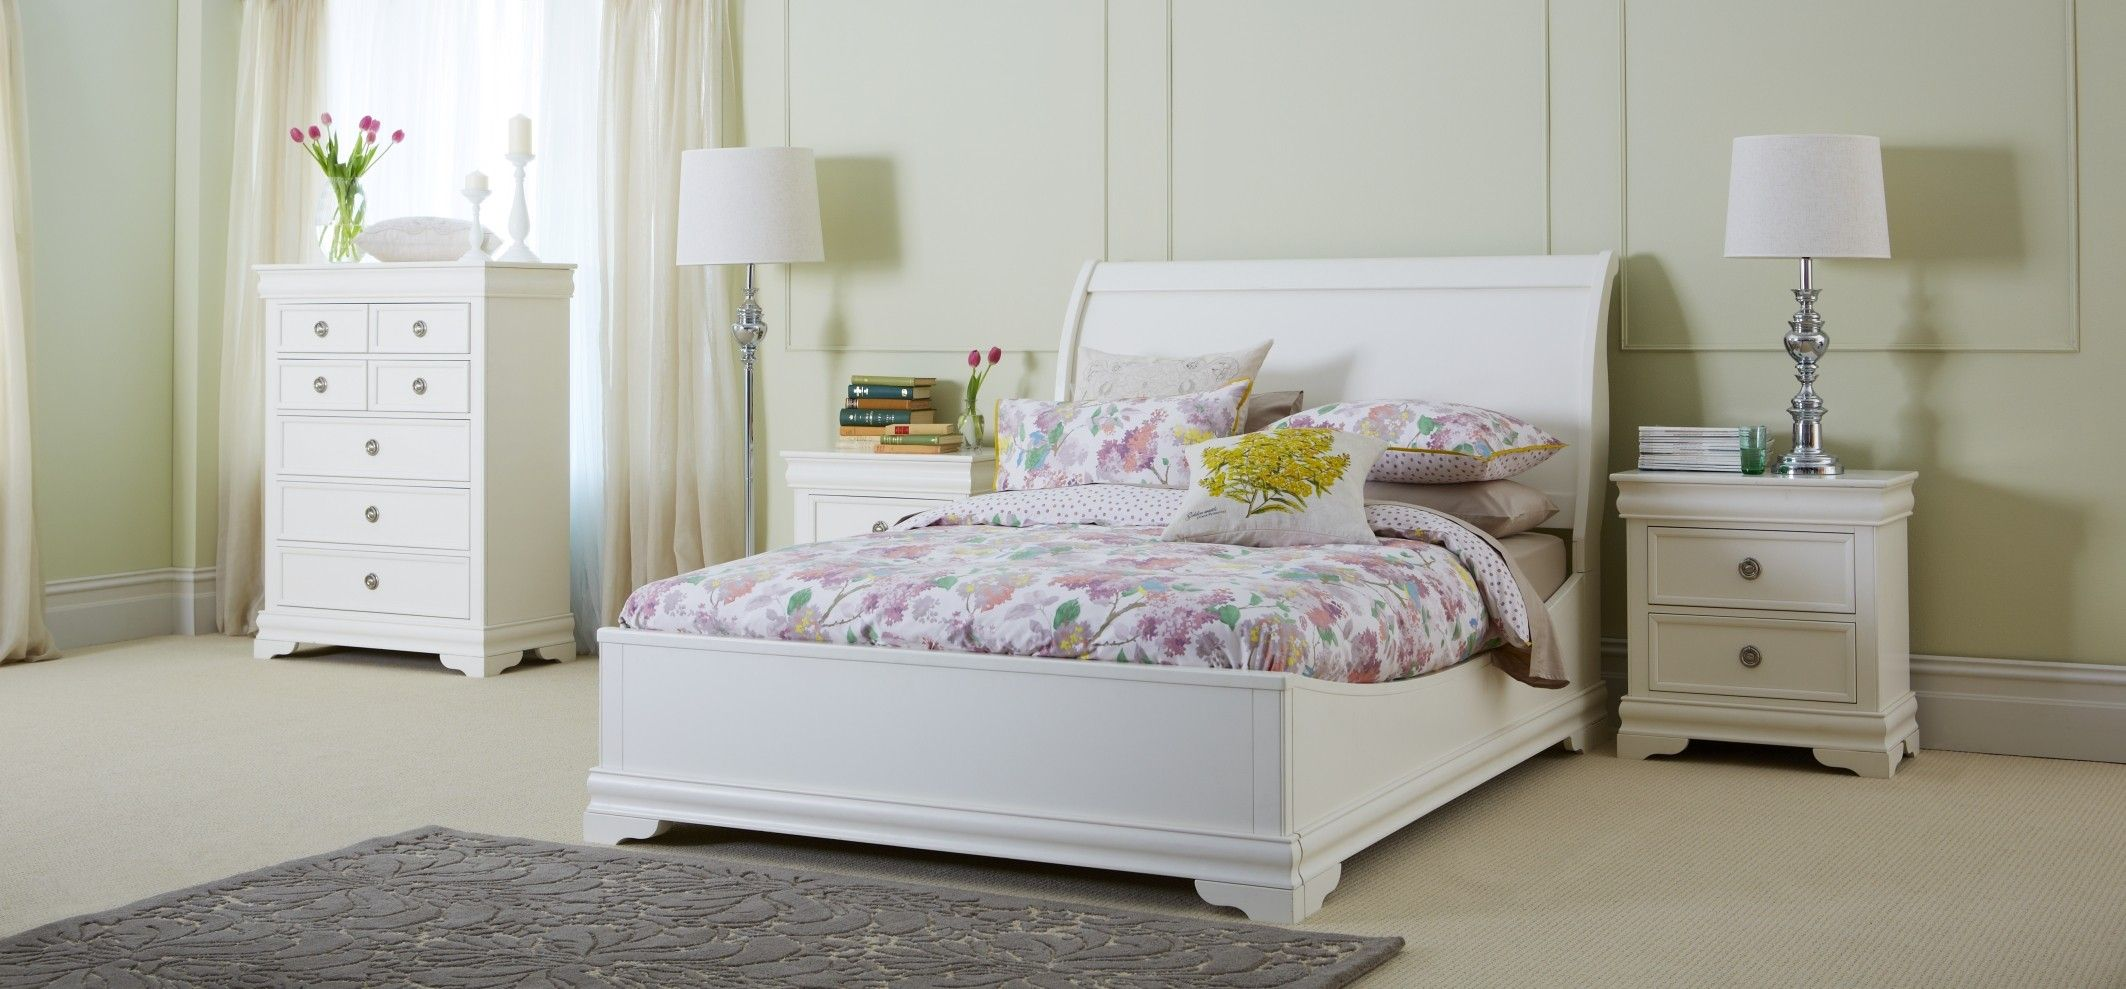 Forty Winks Avignon White Classic Romantic style Bedroom Furniture Suite  with white linens and d cor    BEDROOM INSPIRATION   Pinterest   Bedrooms. Forty Winks Avignon White Classic Romantic style Bedroom Furniture